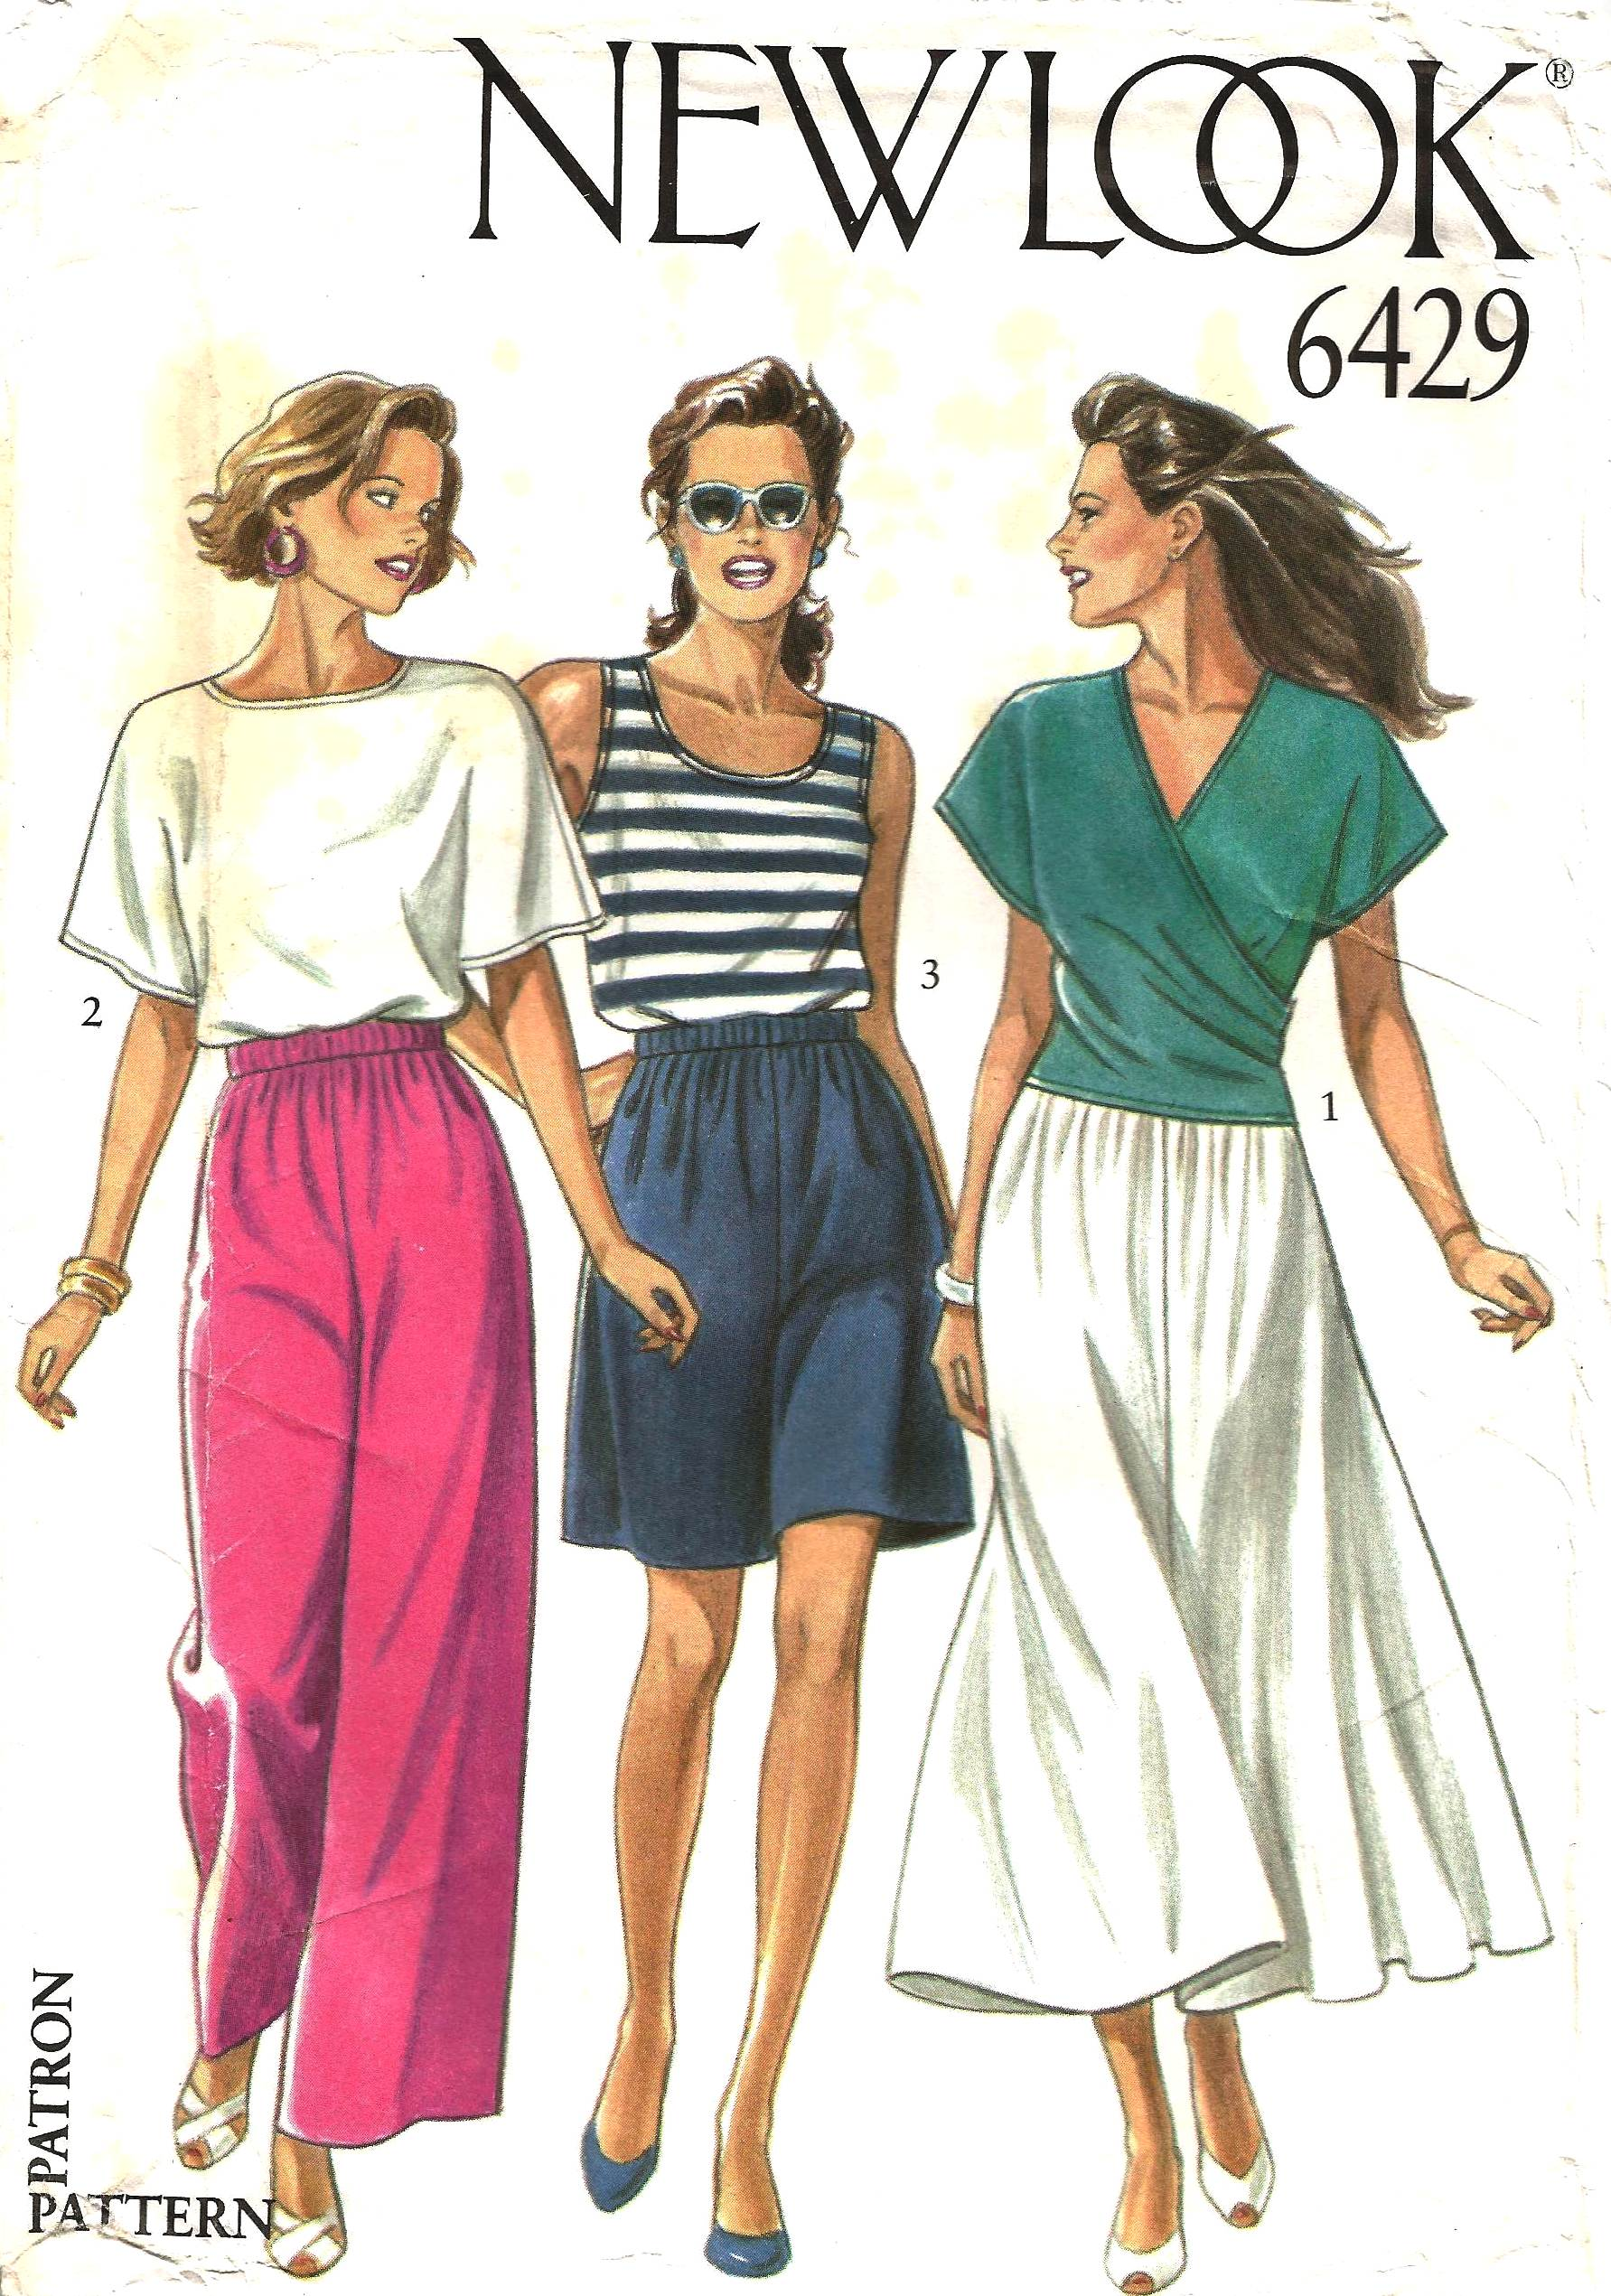 New look 6429 vintage sewing patterns fandom powered by wikia new look 6429 ca mid to late 1980s misses tops skirt pants and shorts tops have neckline and sleeve variations view 1 mock wrap top jeuxipadfo Choice Image